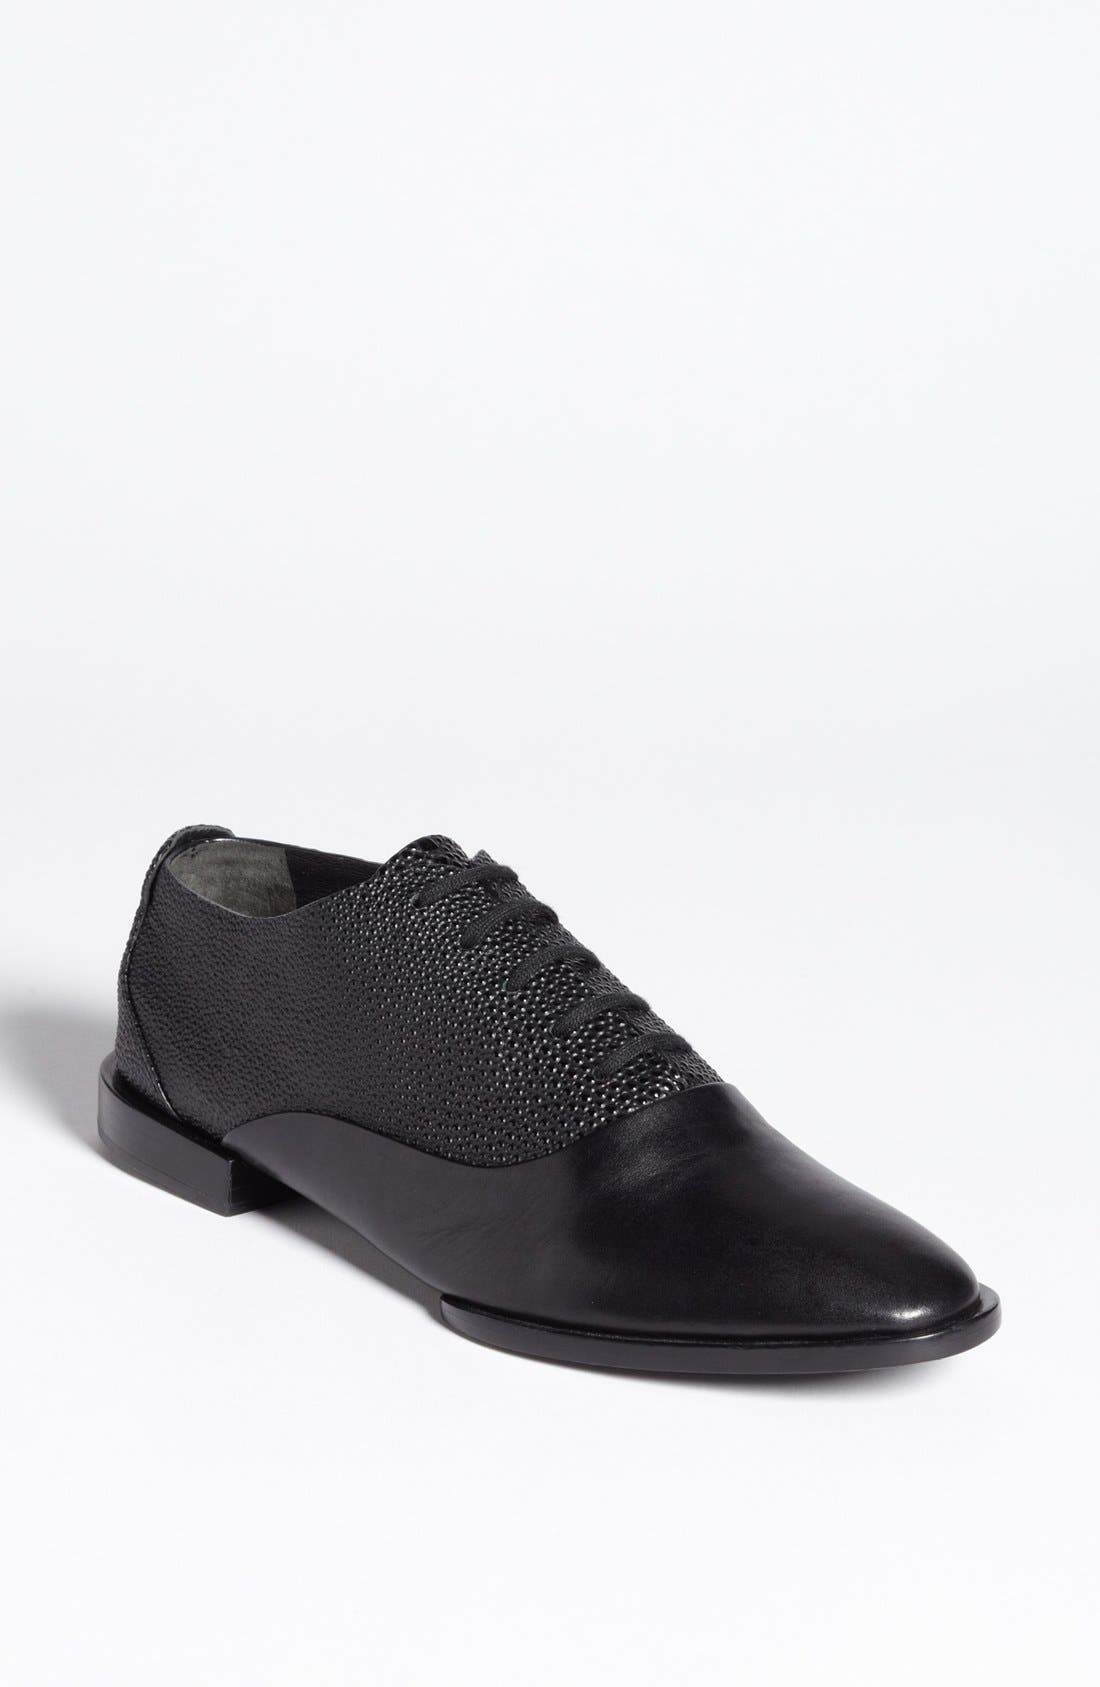 Main Image - Alexander Wang 'Ingrid' Oxford